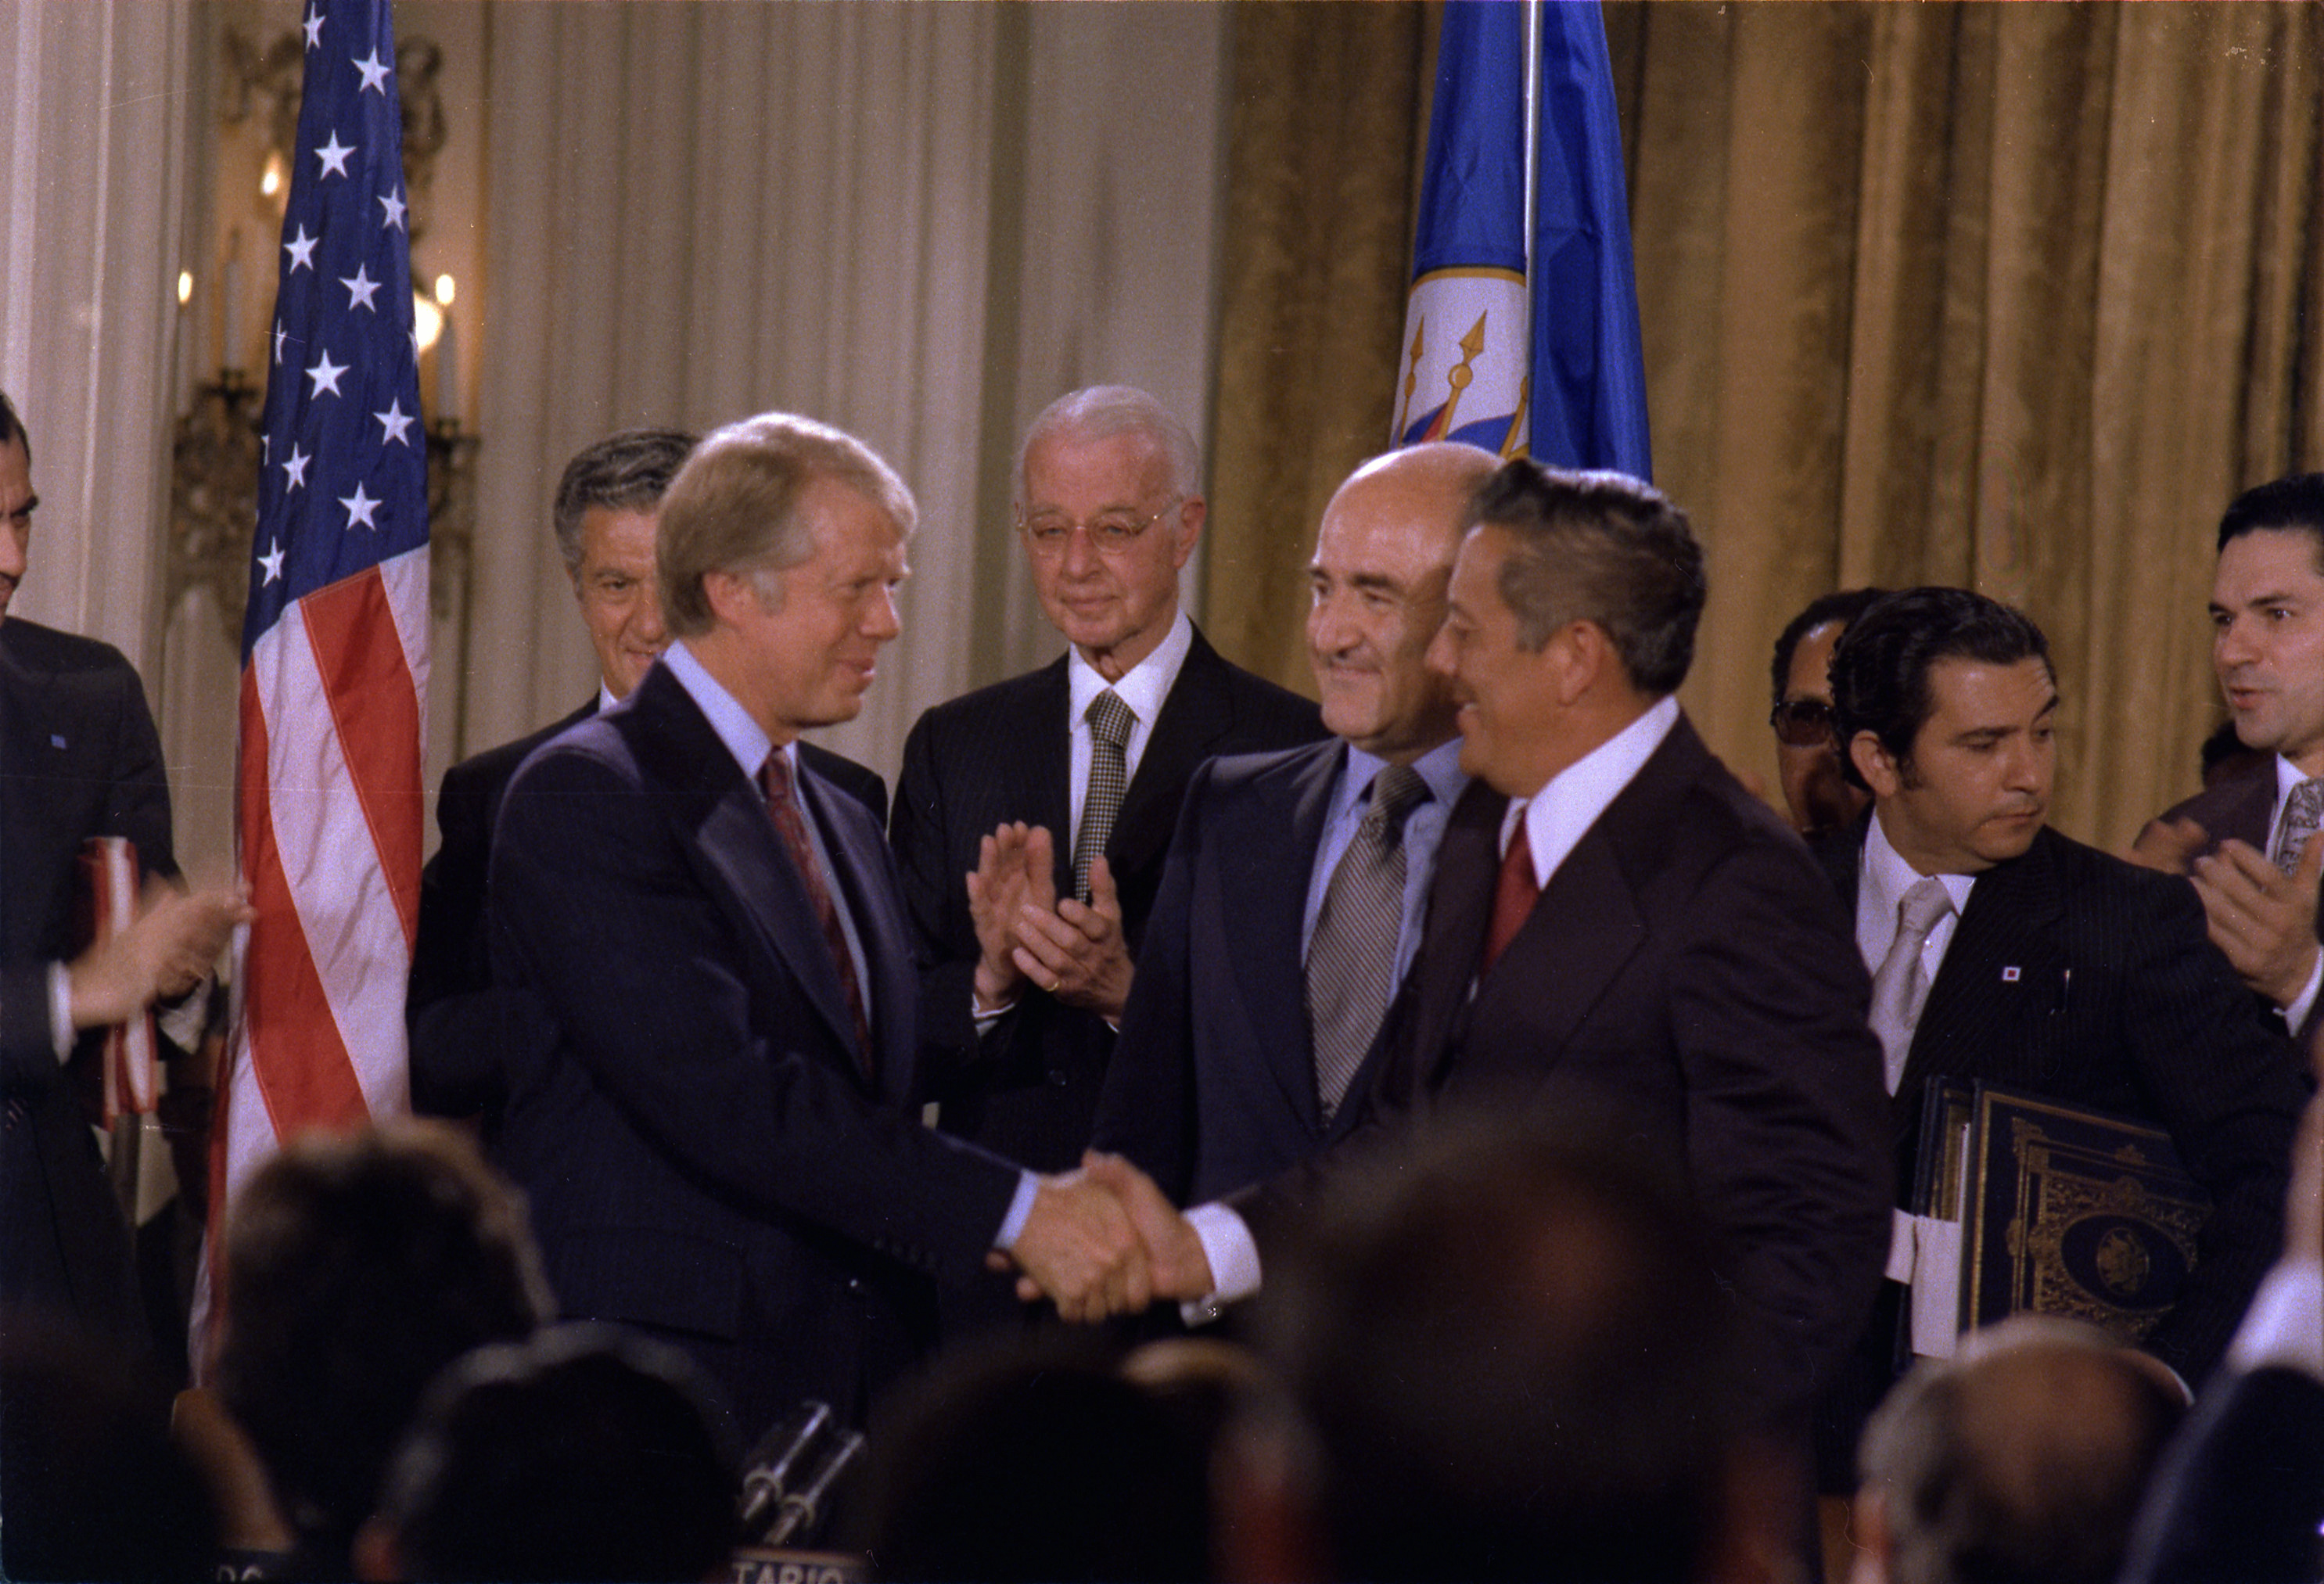 President Carter shakes hands with General Torrijos of Panama after signing the Panama Canal Treaty.